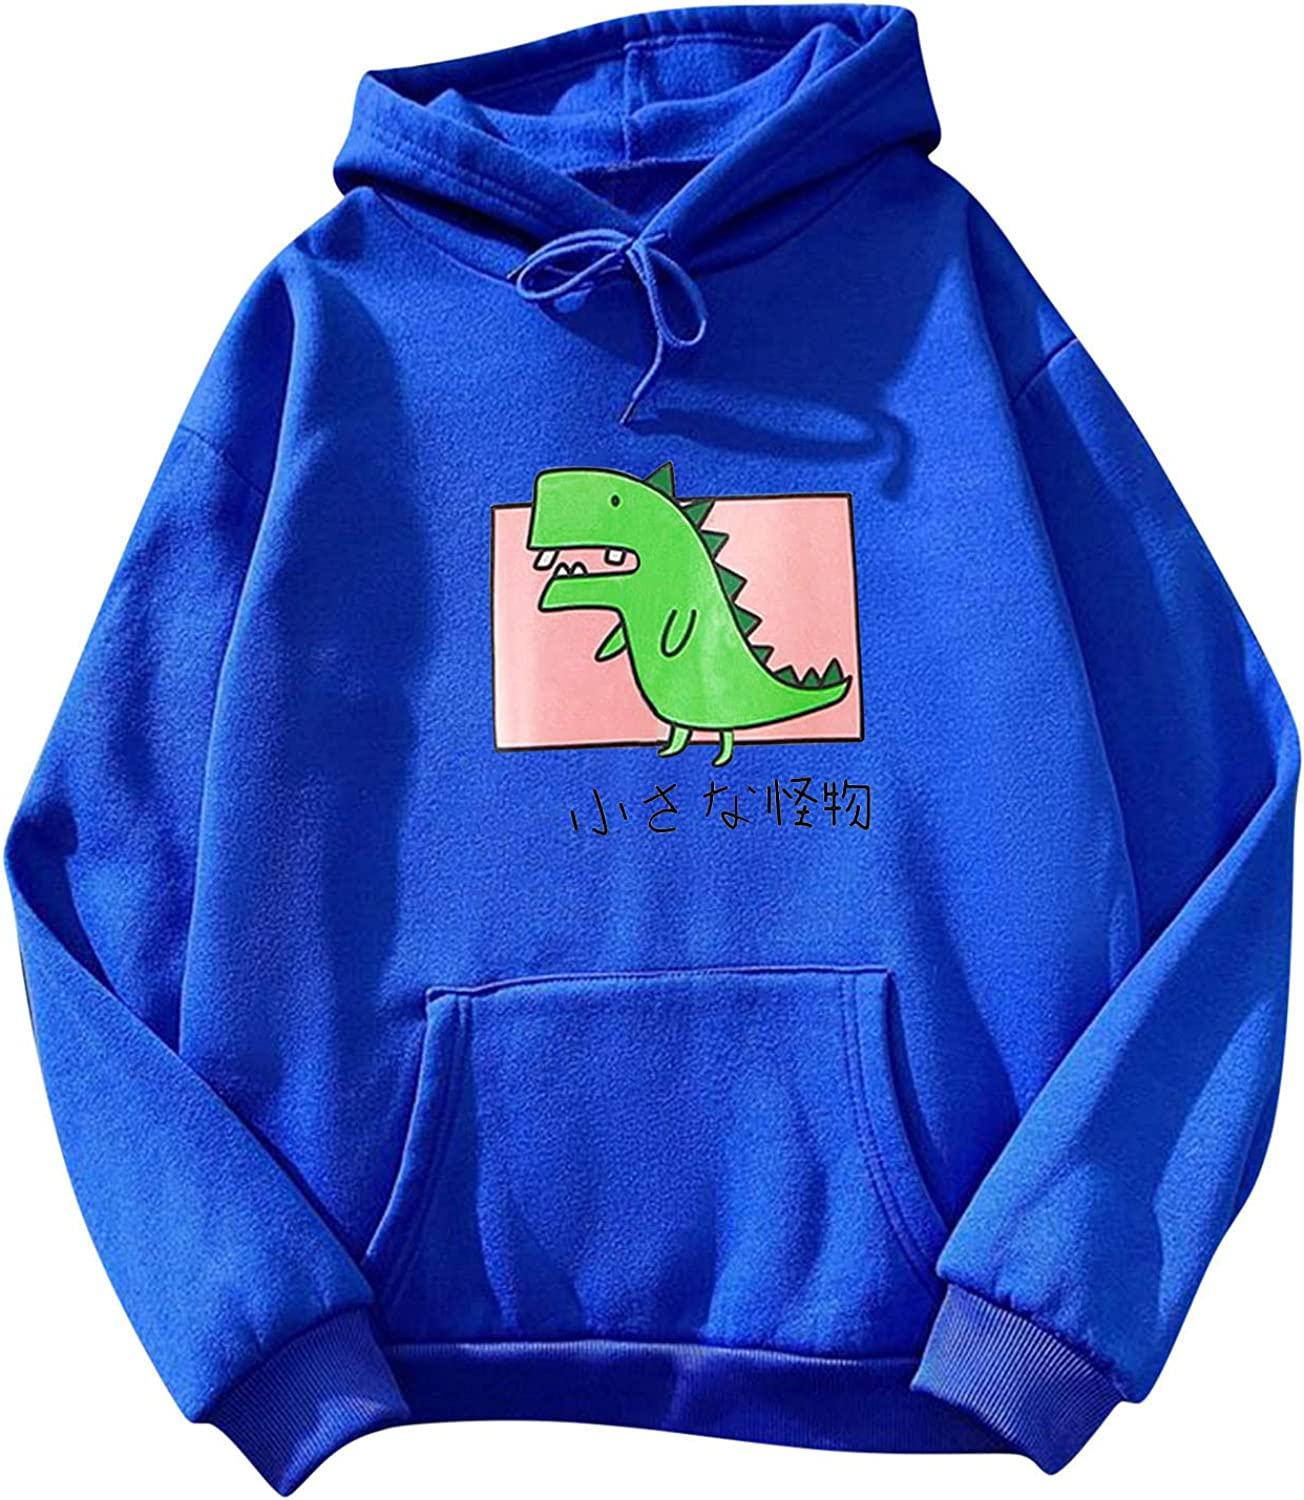 Lingbing Graphic Hoodies for Women, Cute Dinosaur Sweatshirts with Pockets Casual Lightweight Crewneck Pullover Fall Top